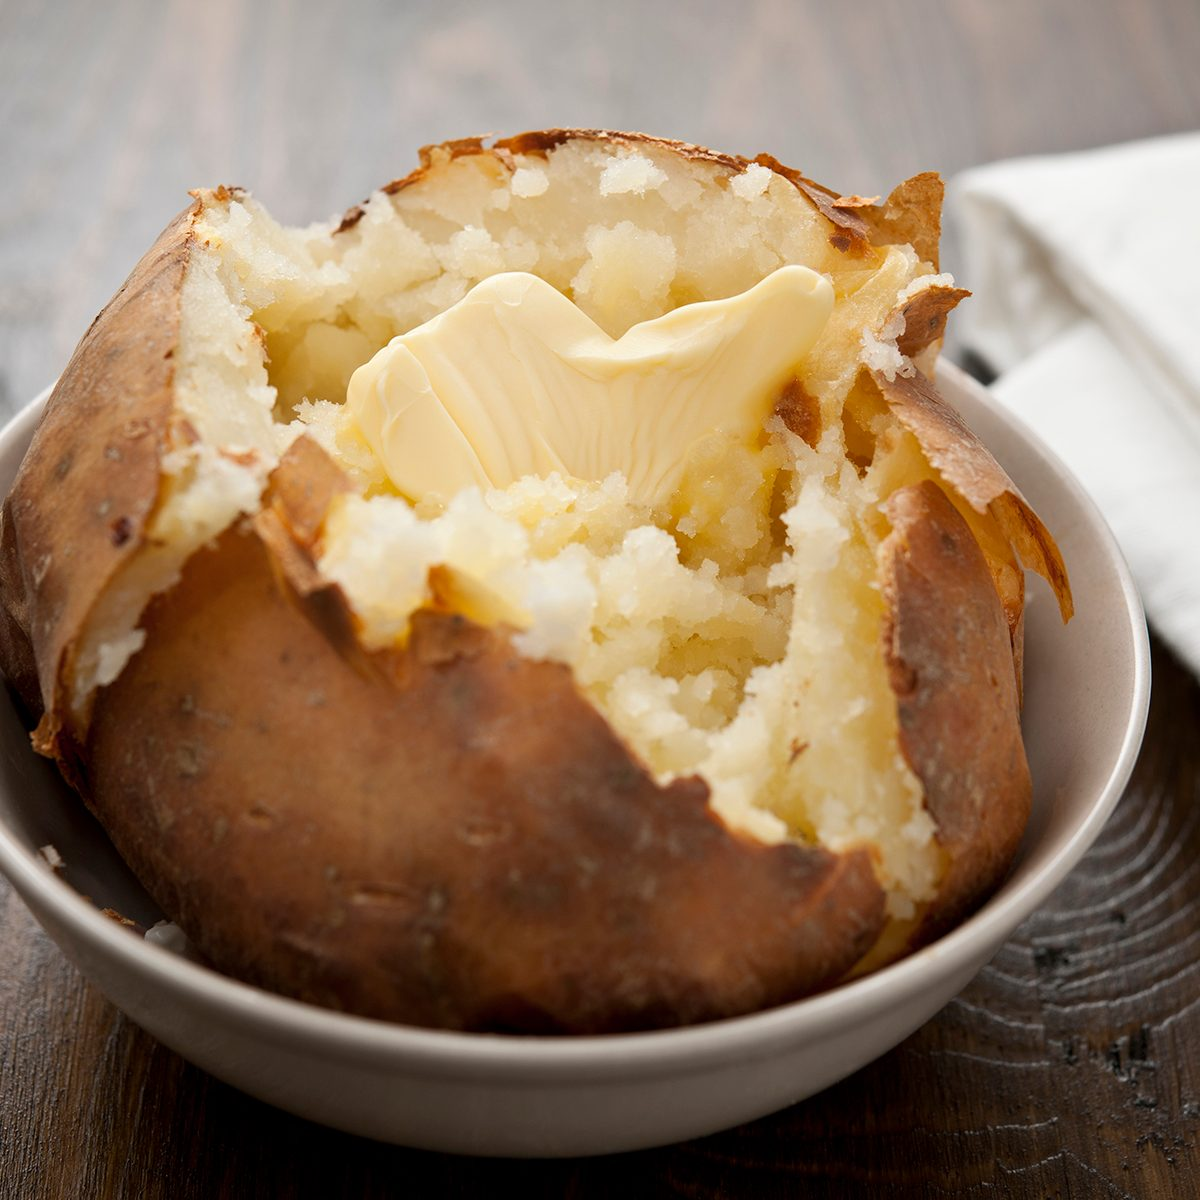 Baked potato with melting butter, horizontal.